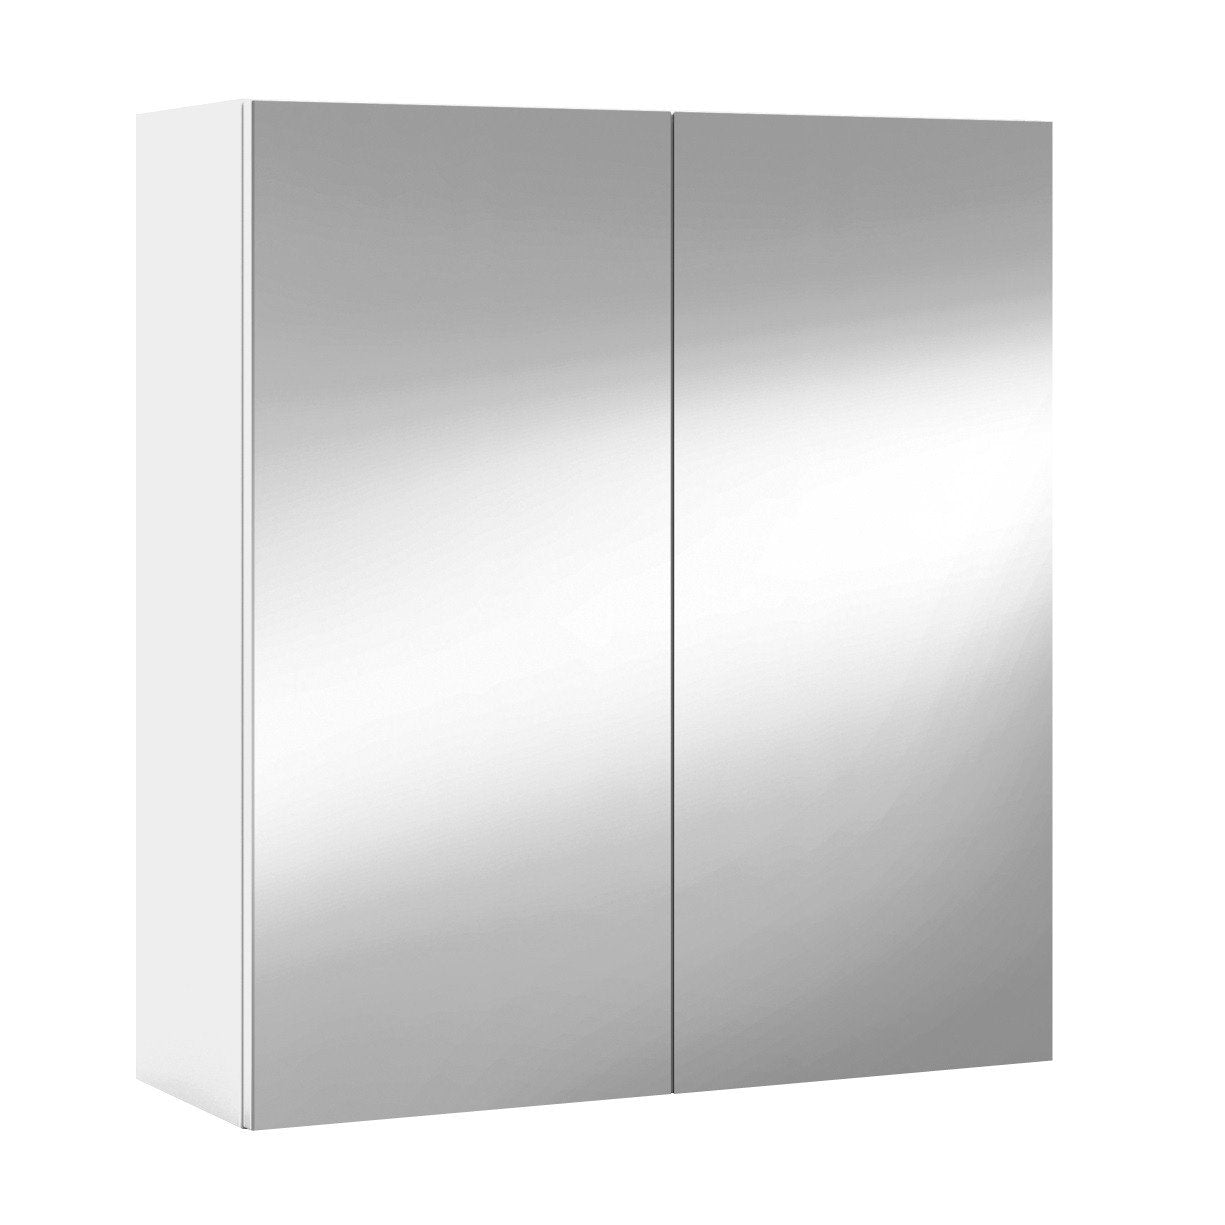 BALTIC Bathroom Modular Wall Cabinets - White | online4furniture.co ...